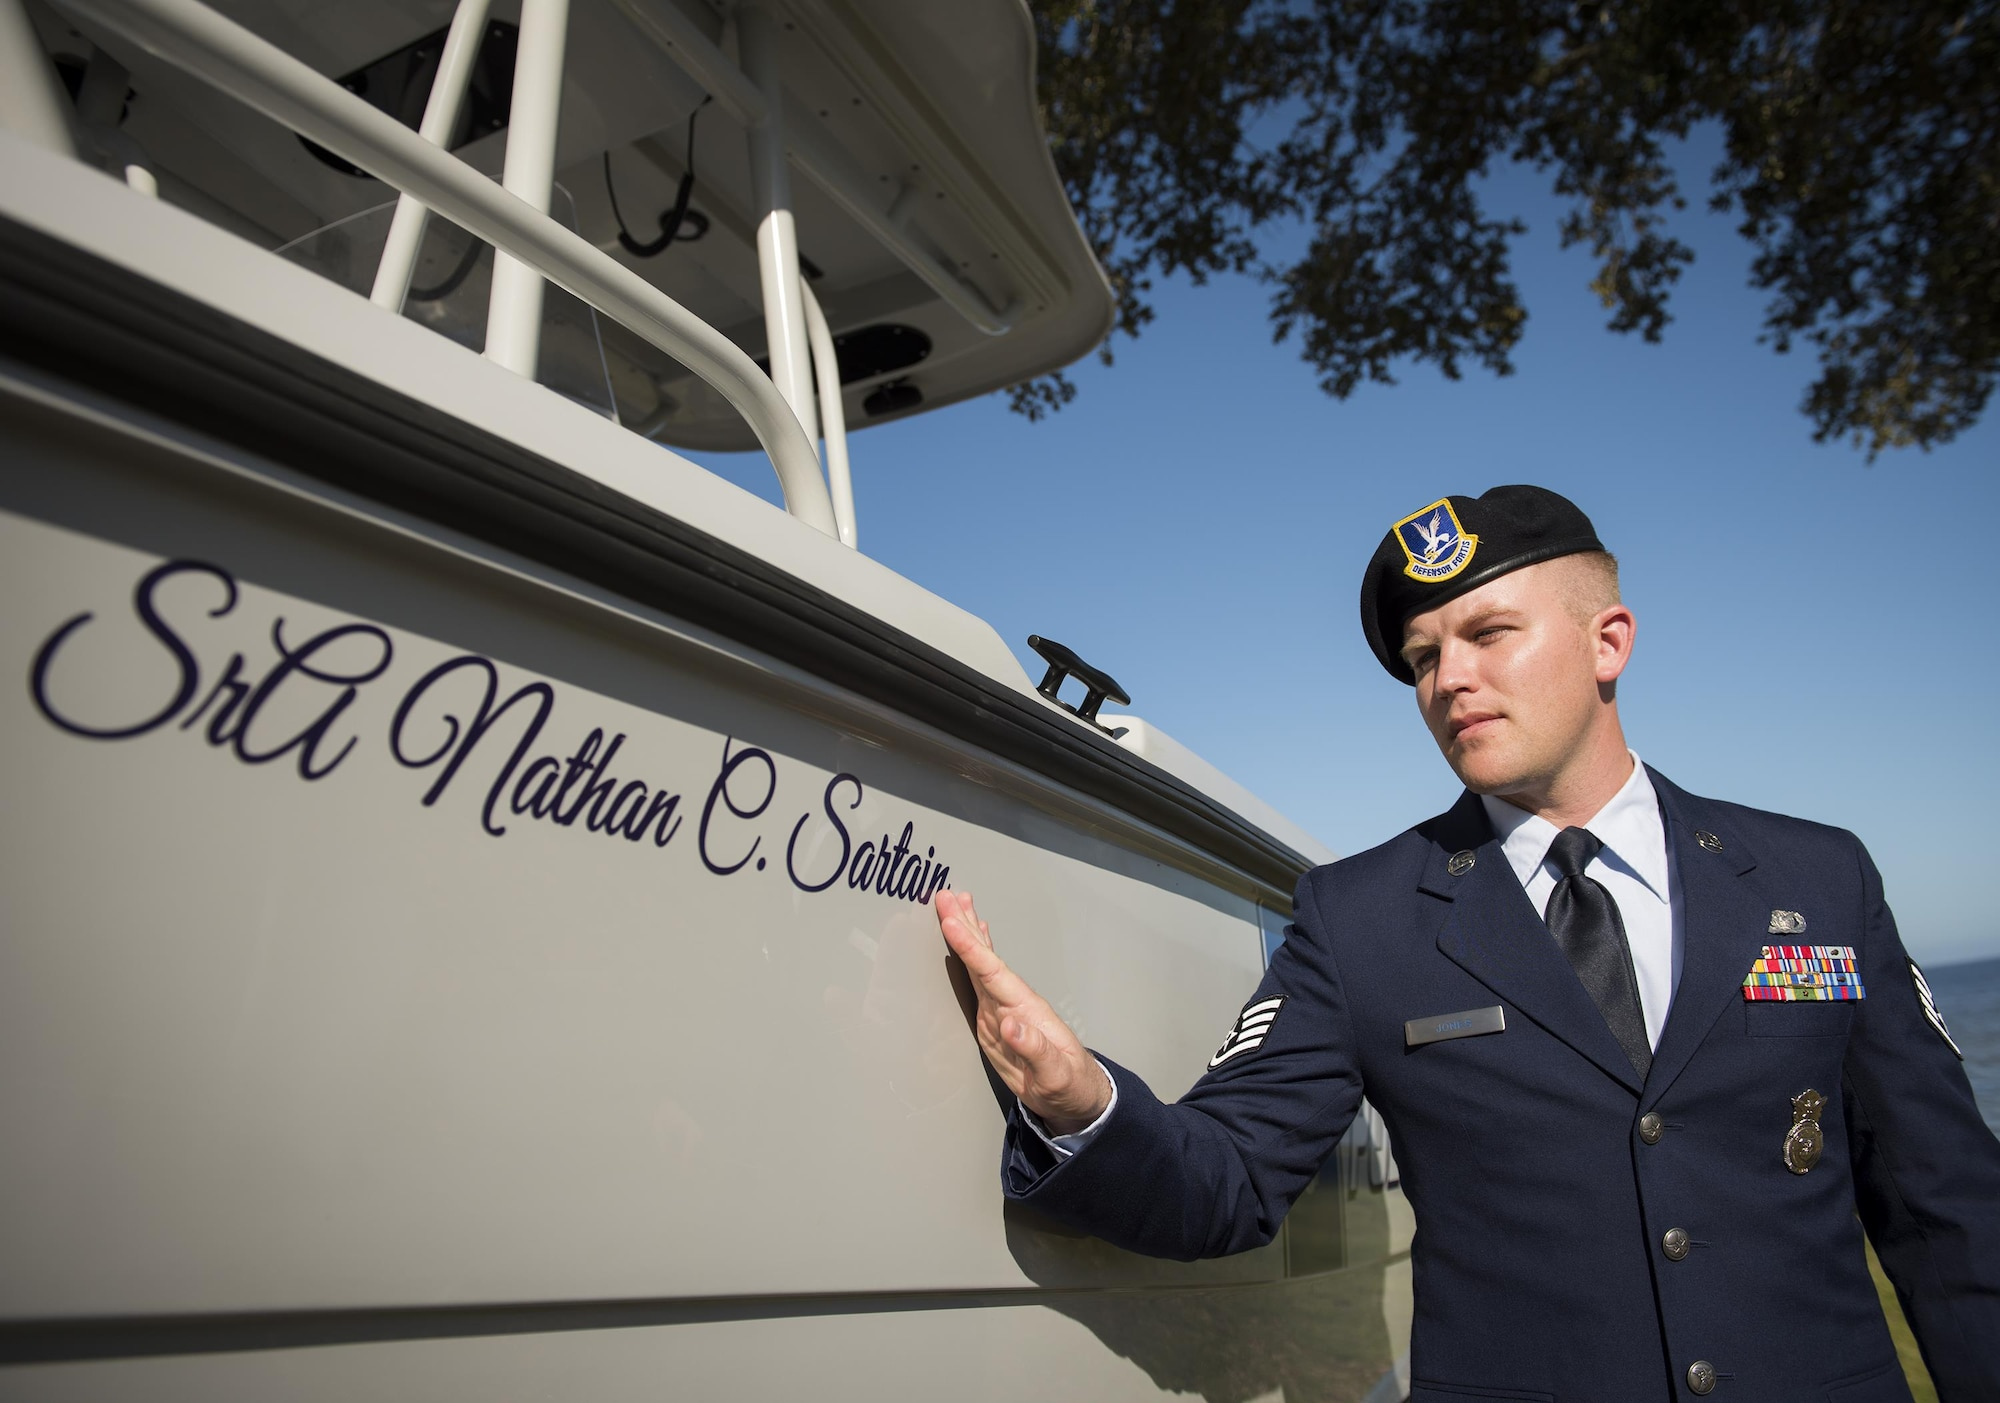 Staff Sgt. Travis Jones, 96th Security Forces Squadron, remembers his friend, Senior Airman Nathan Sartain, during a boat-dedication ceremony Feb. 24 at Eglin Air Force Base, Fla.  Sartain, a security forces Airman from Pensacola, died in an aircraft crash while deployed in 2015.  The newest patrol boat in the Eglin fleet bears his name to honor his service and sacrifice. (U.S. Air Force photo/Samuel King Jr.)